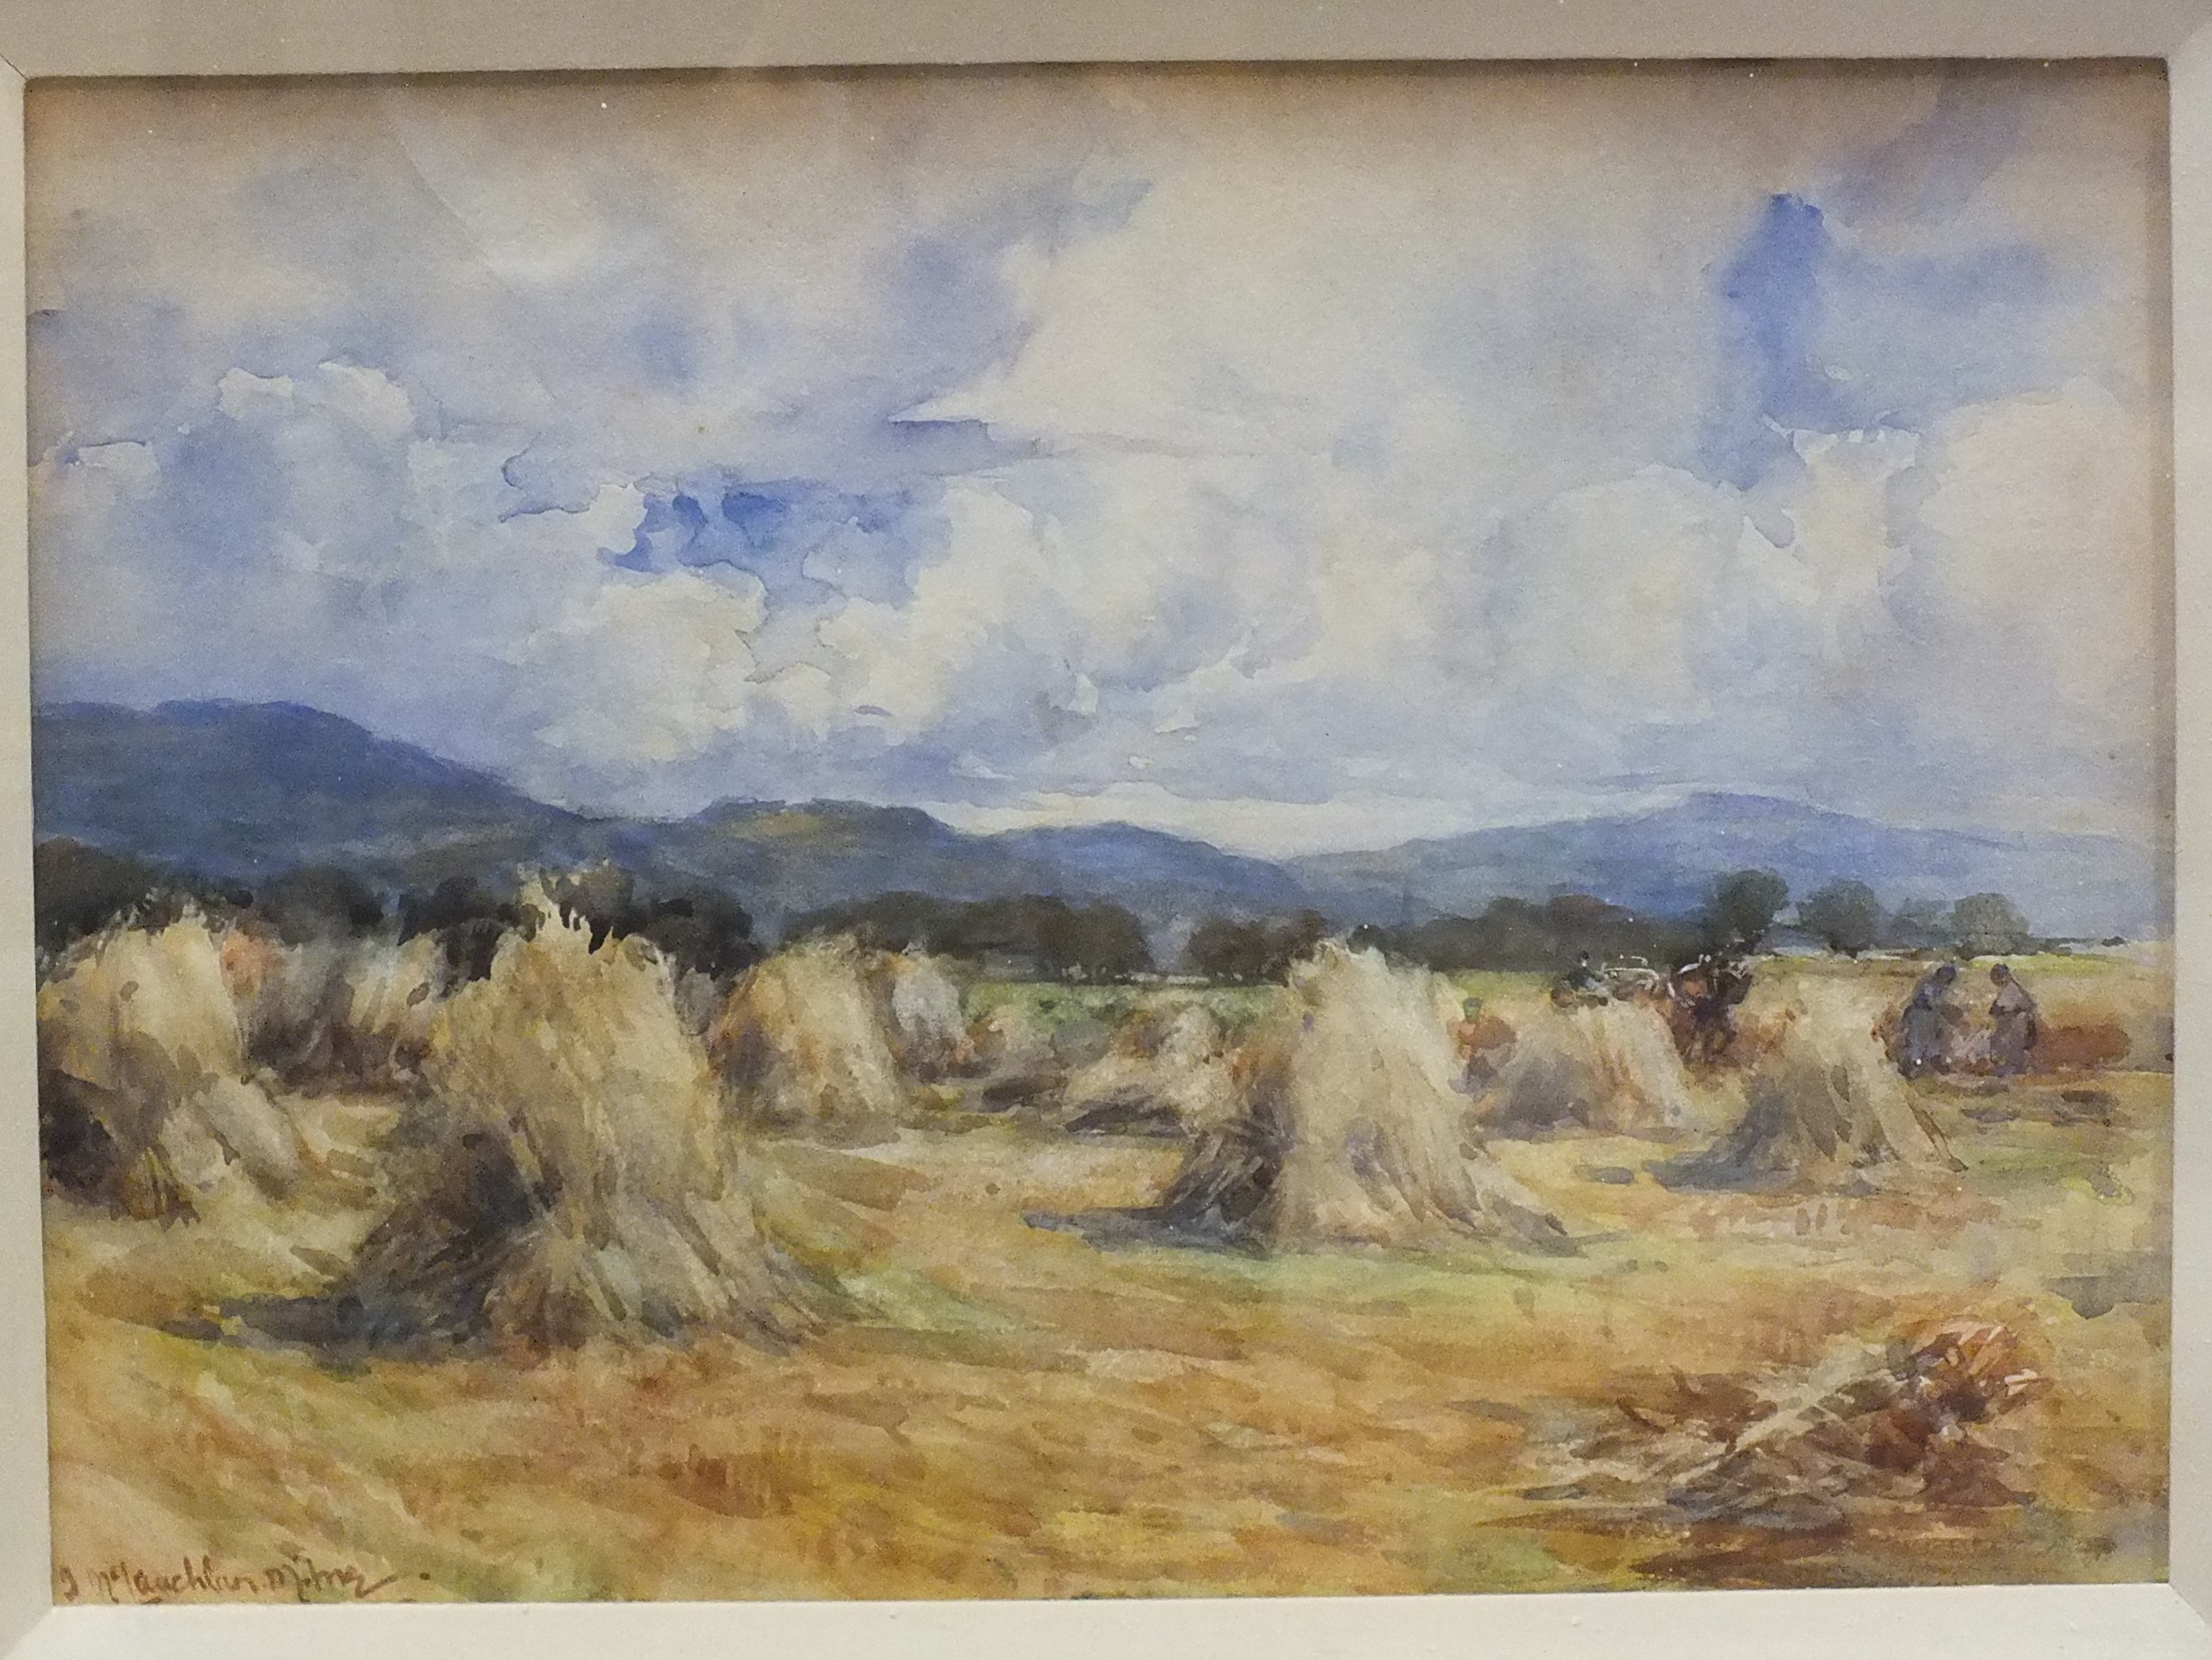 Manner of John Maclauchlan-Milne FIGURES AND A CART IN A HARVEST FIELD Watercolour, 26 x 36cm, bears - Image 2 of 3